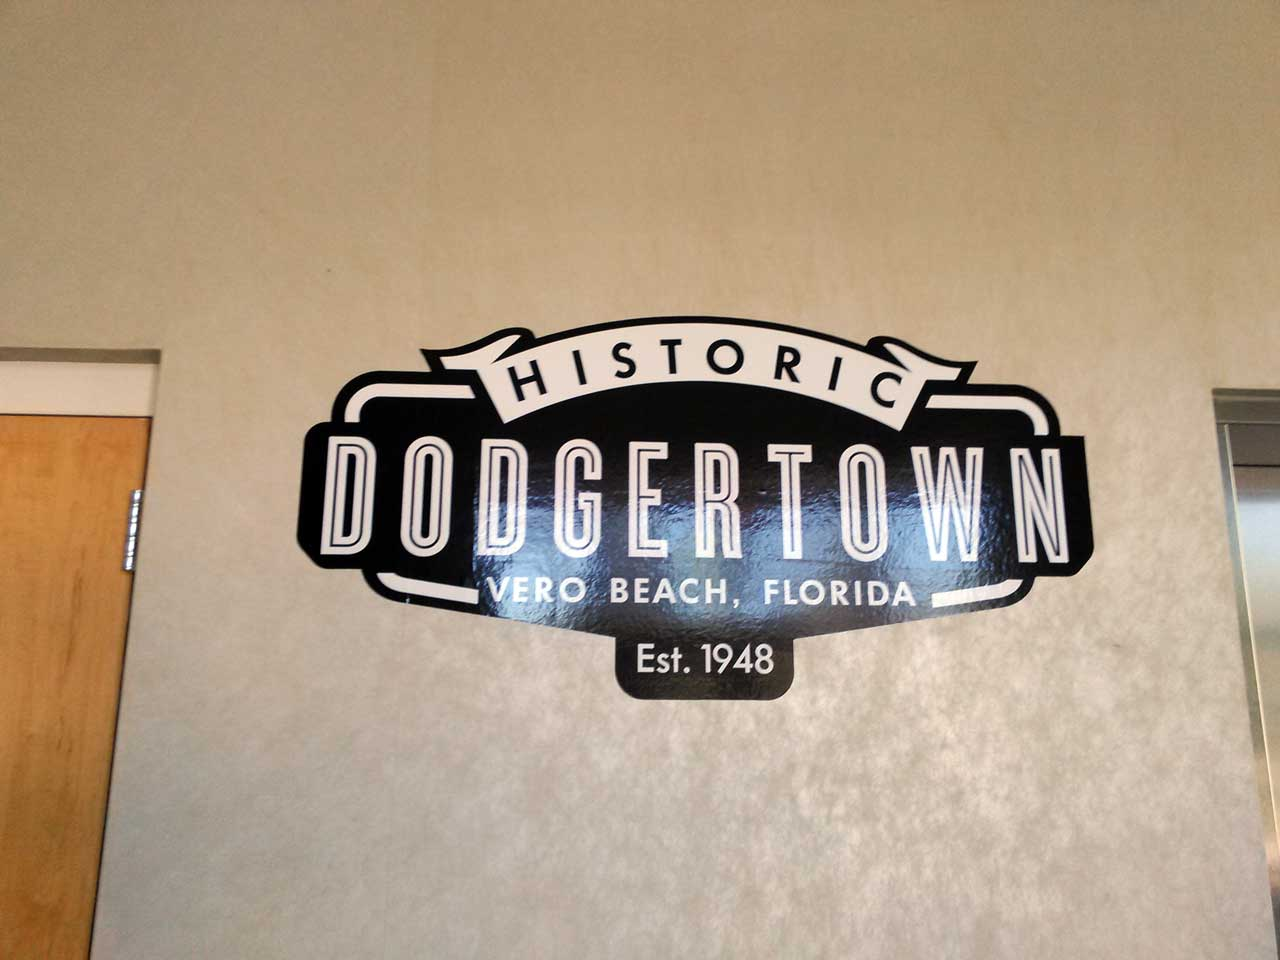 Historic Dodgertown